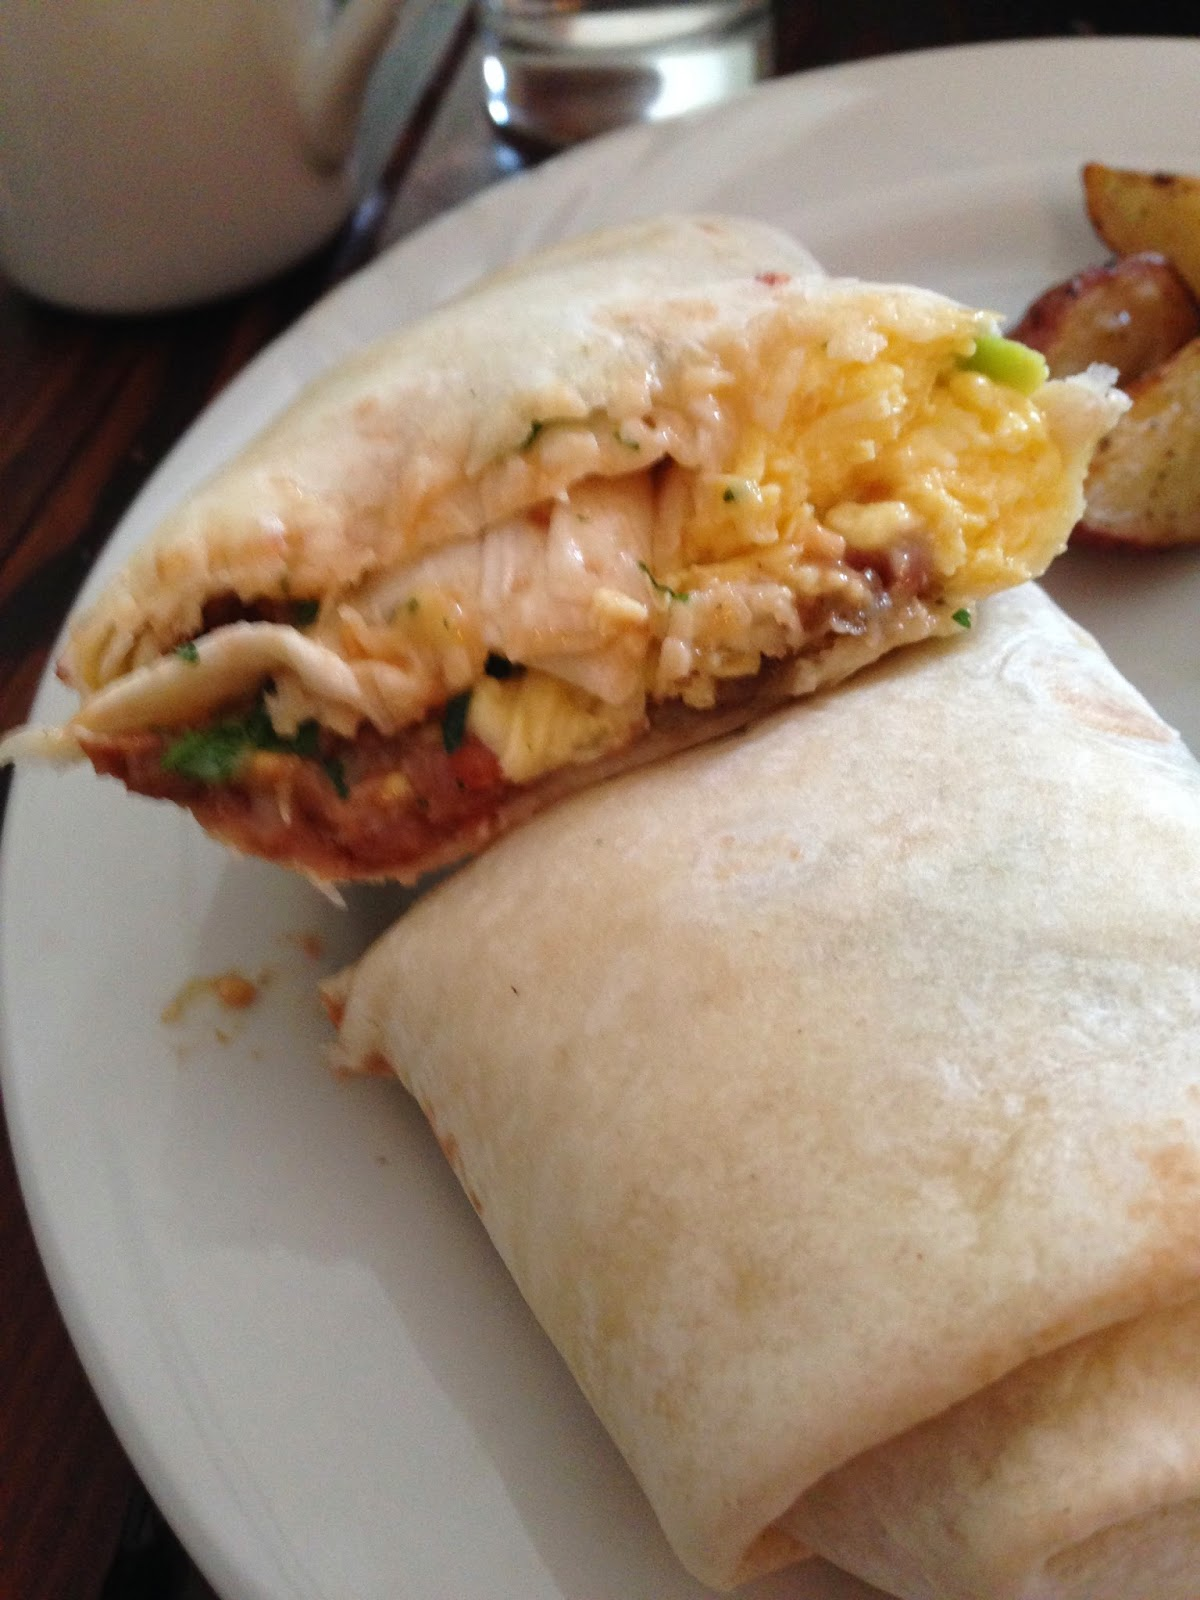 Breakfast Burrito from Bad Habit Room in Portland, OR | The Economical Eater